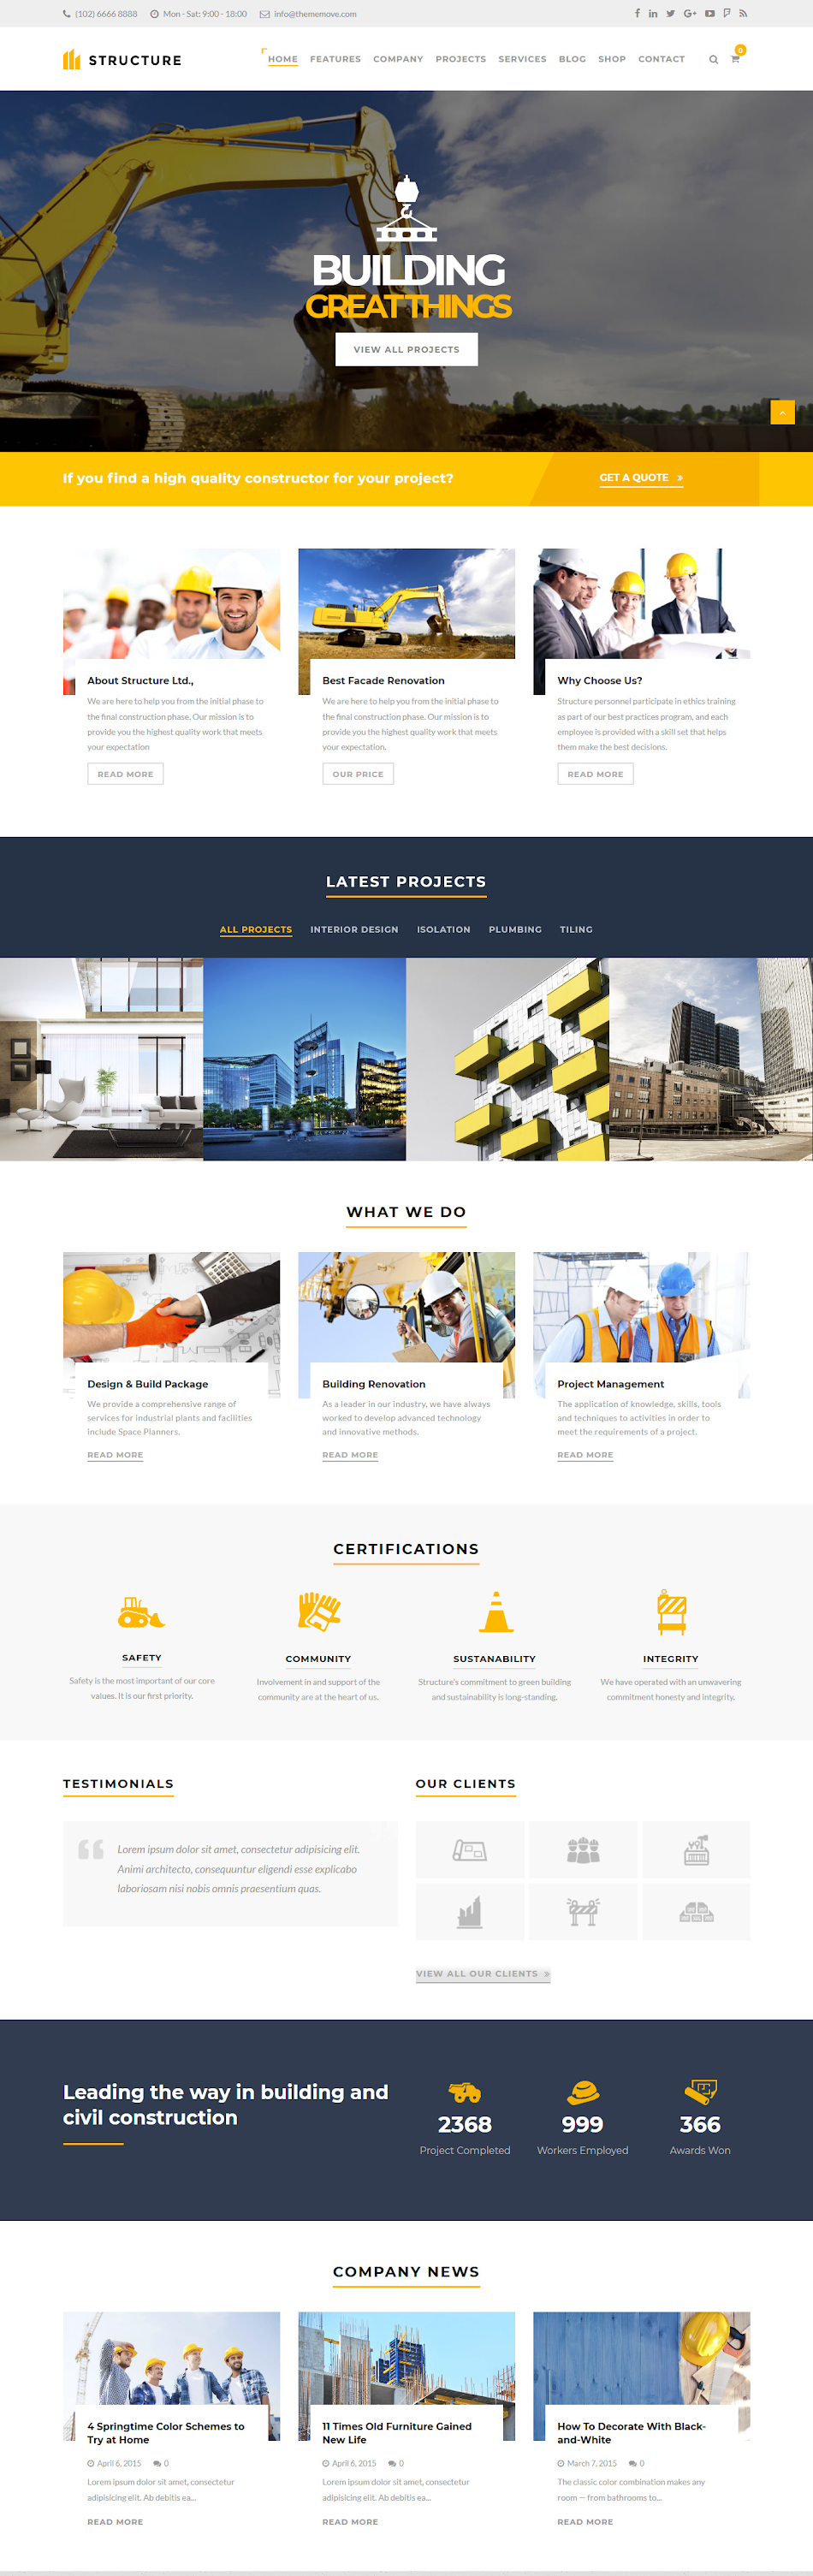 Structure - Best Premium Construction Business Company WordPress Theme